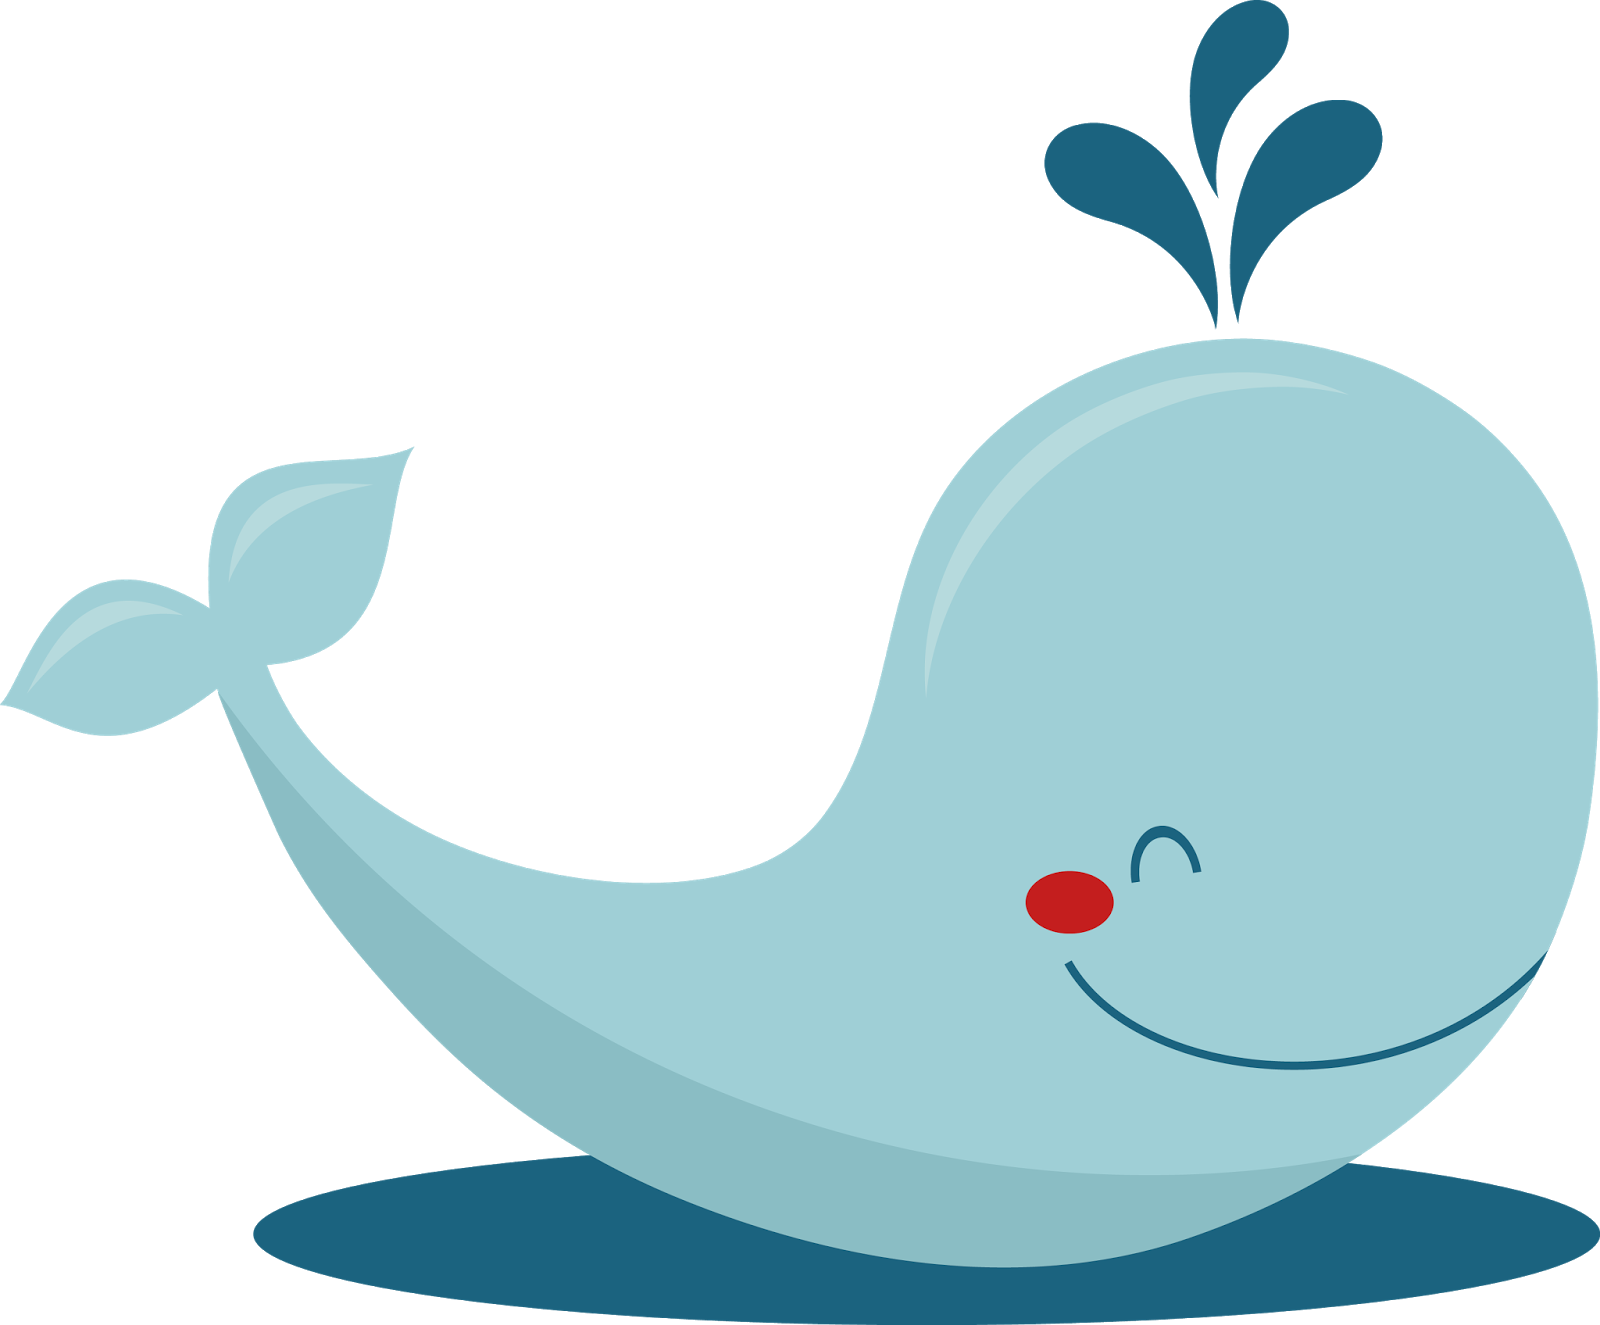 Free Whale Cliparts, Download Free Clip Art, Free Clip Art on.